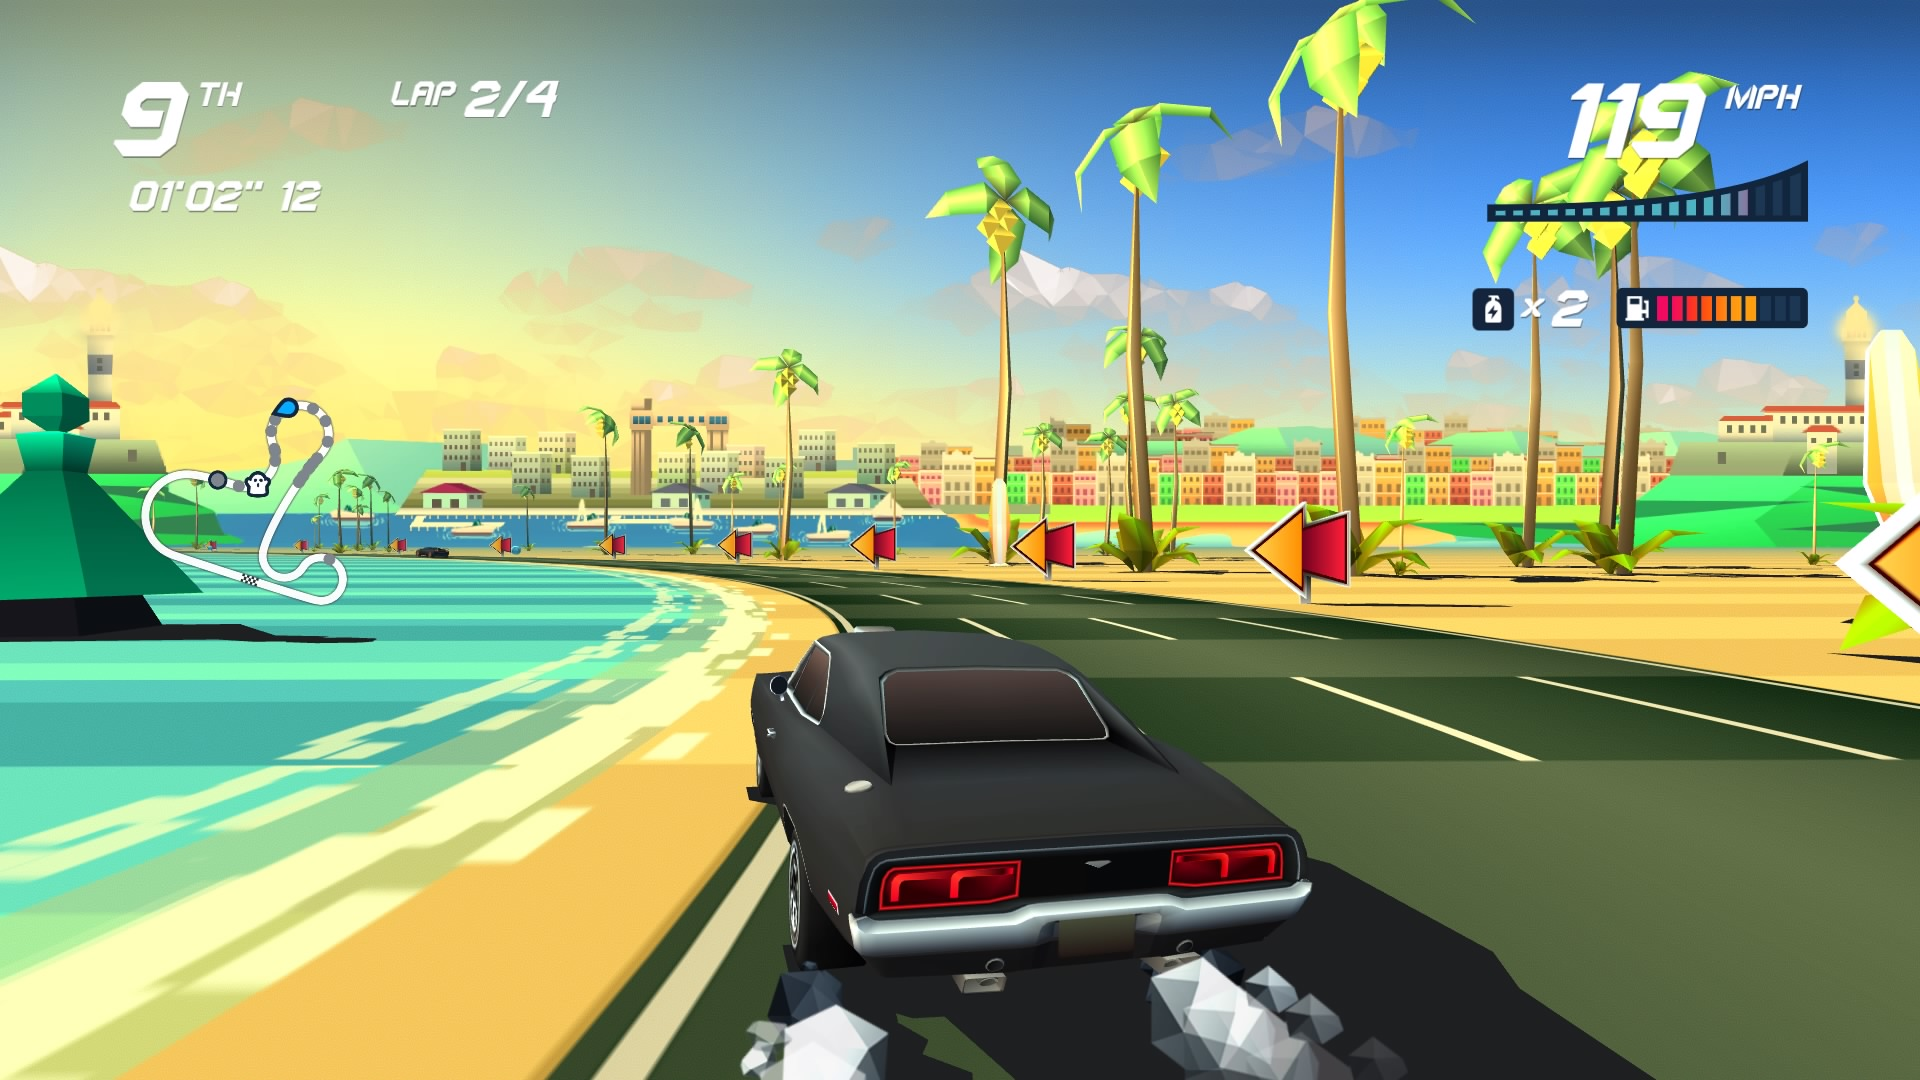 Get Ready To Take Part In Some Fast Paced Races Around The World Horizon Chase Turbo With Incredible Sds And Plenty Of Turns Your Racing Skills Will